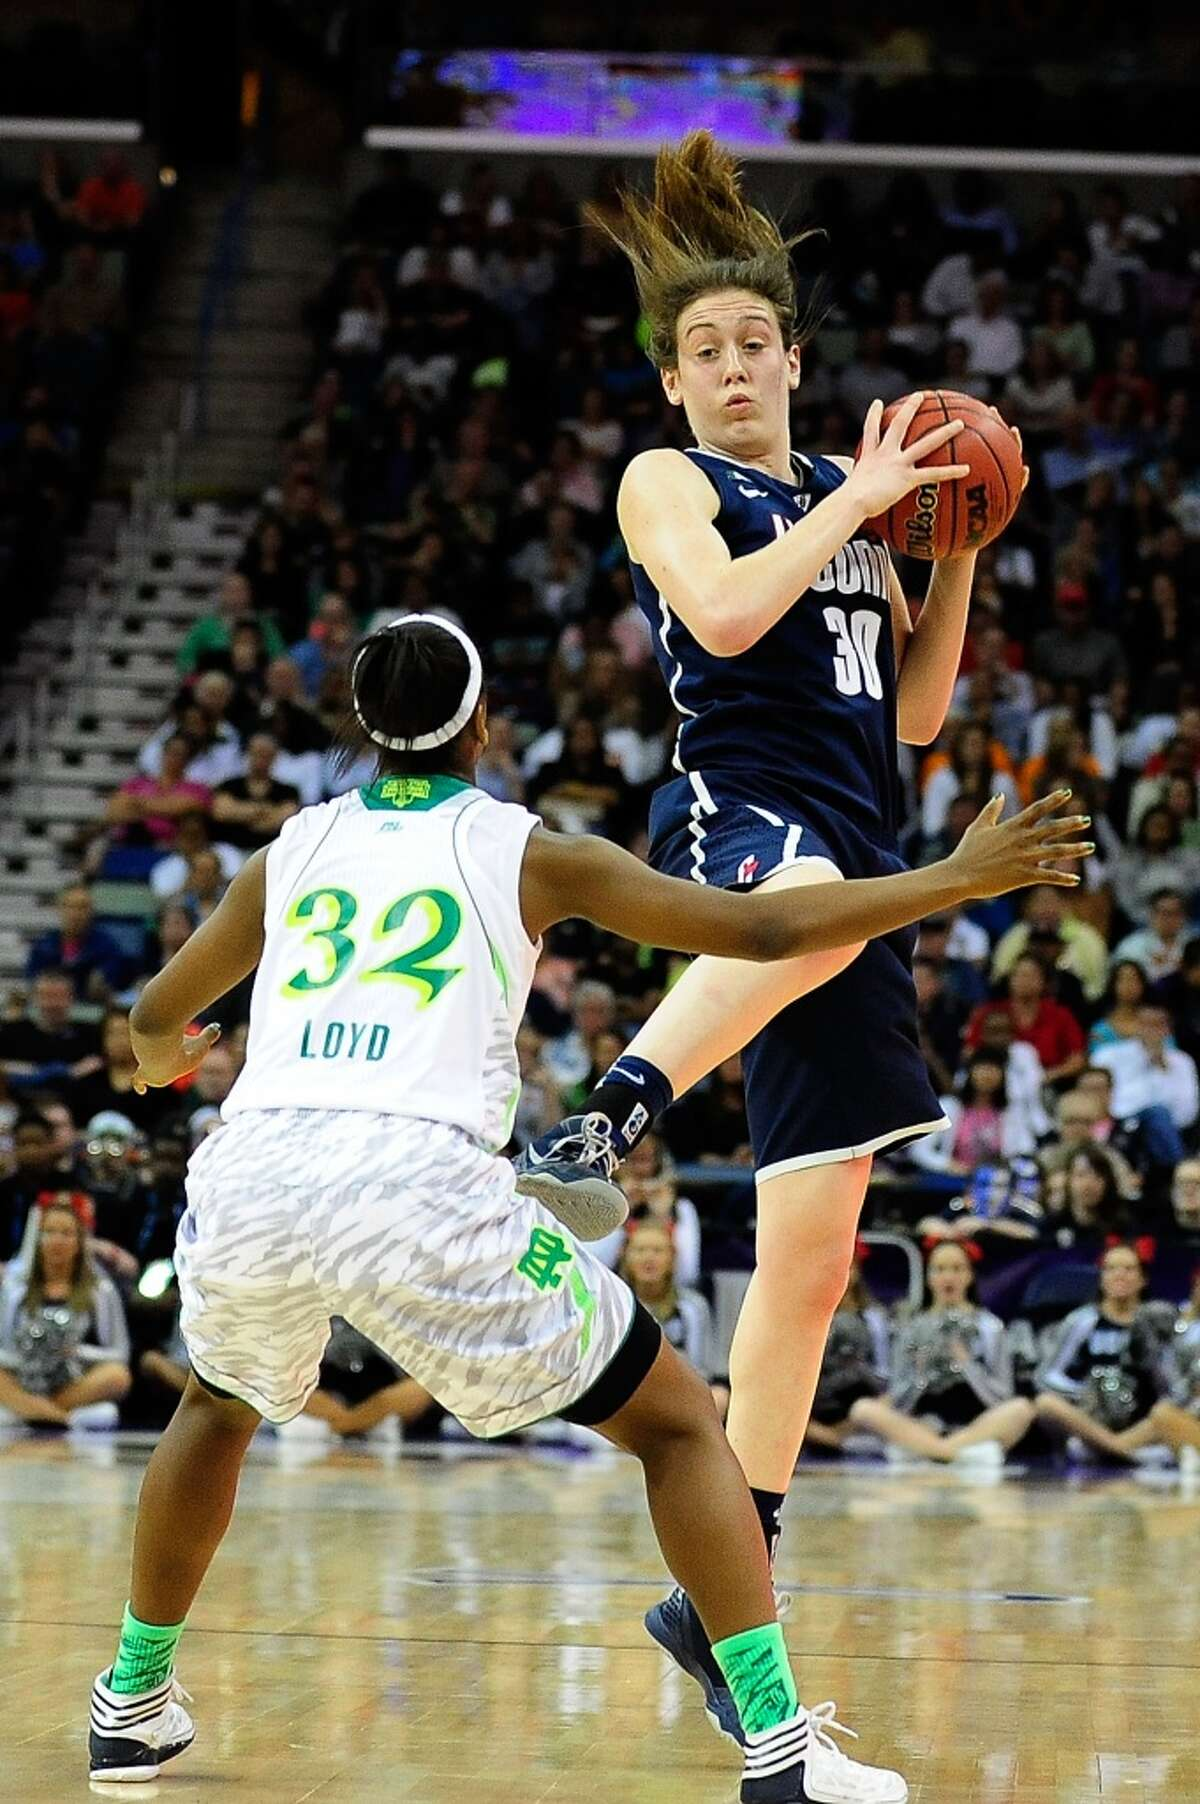 NEW ORLEANS, LA - APRIL 07: Breanna Stewart #30 of the Connecticut Huskies grabs an inbound pass in front of Jewell Loyd #32 of the Notre Dame Fighting Irish during the National Semifinal game of the 2013 NCAA Division I Women's Basketball Championship at New Orleans Arena on April 7, 2013 in New Orleans, Louisiana. (Photo by Stacy Revere/Getty Images)